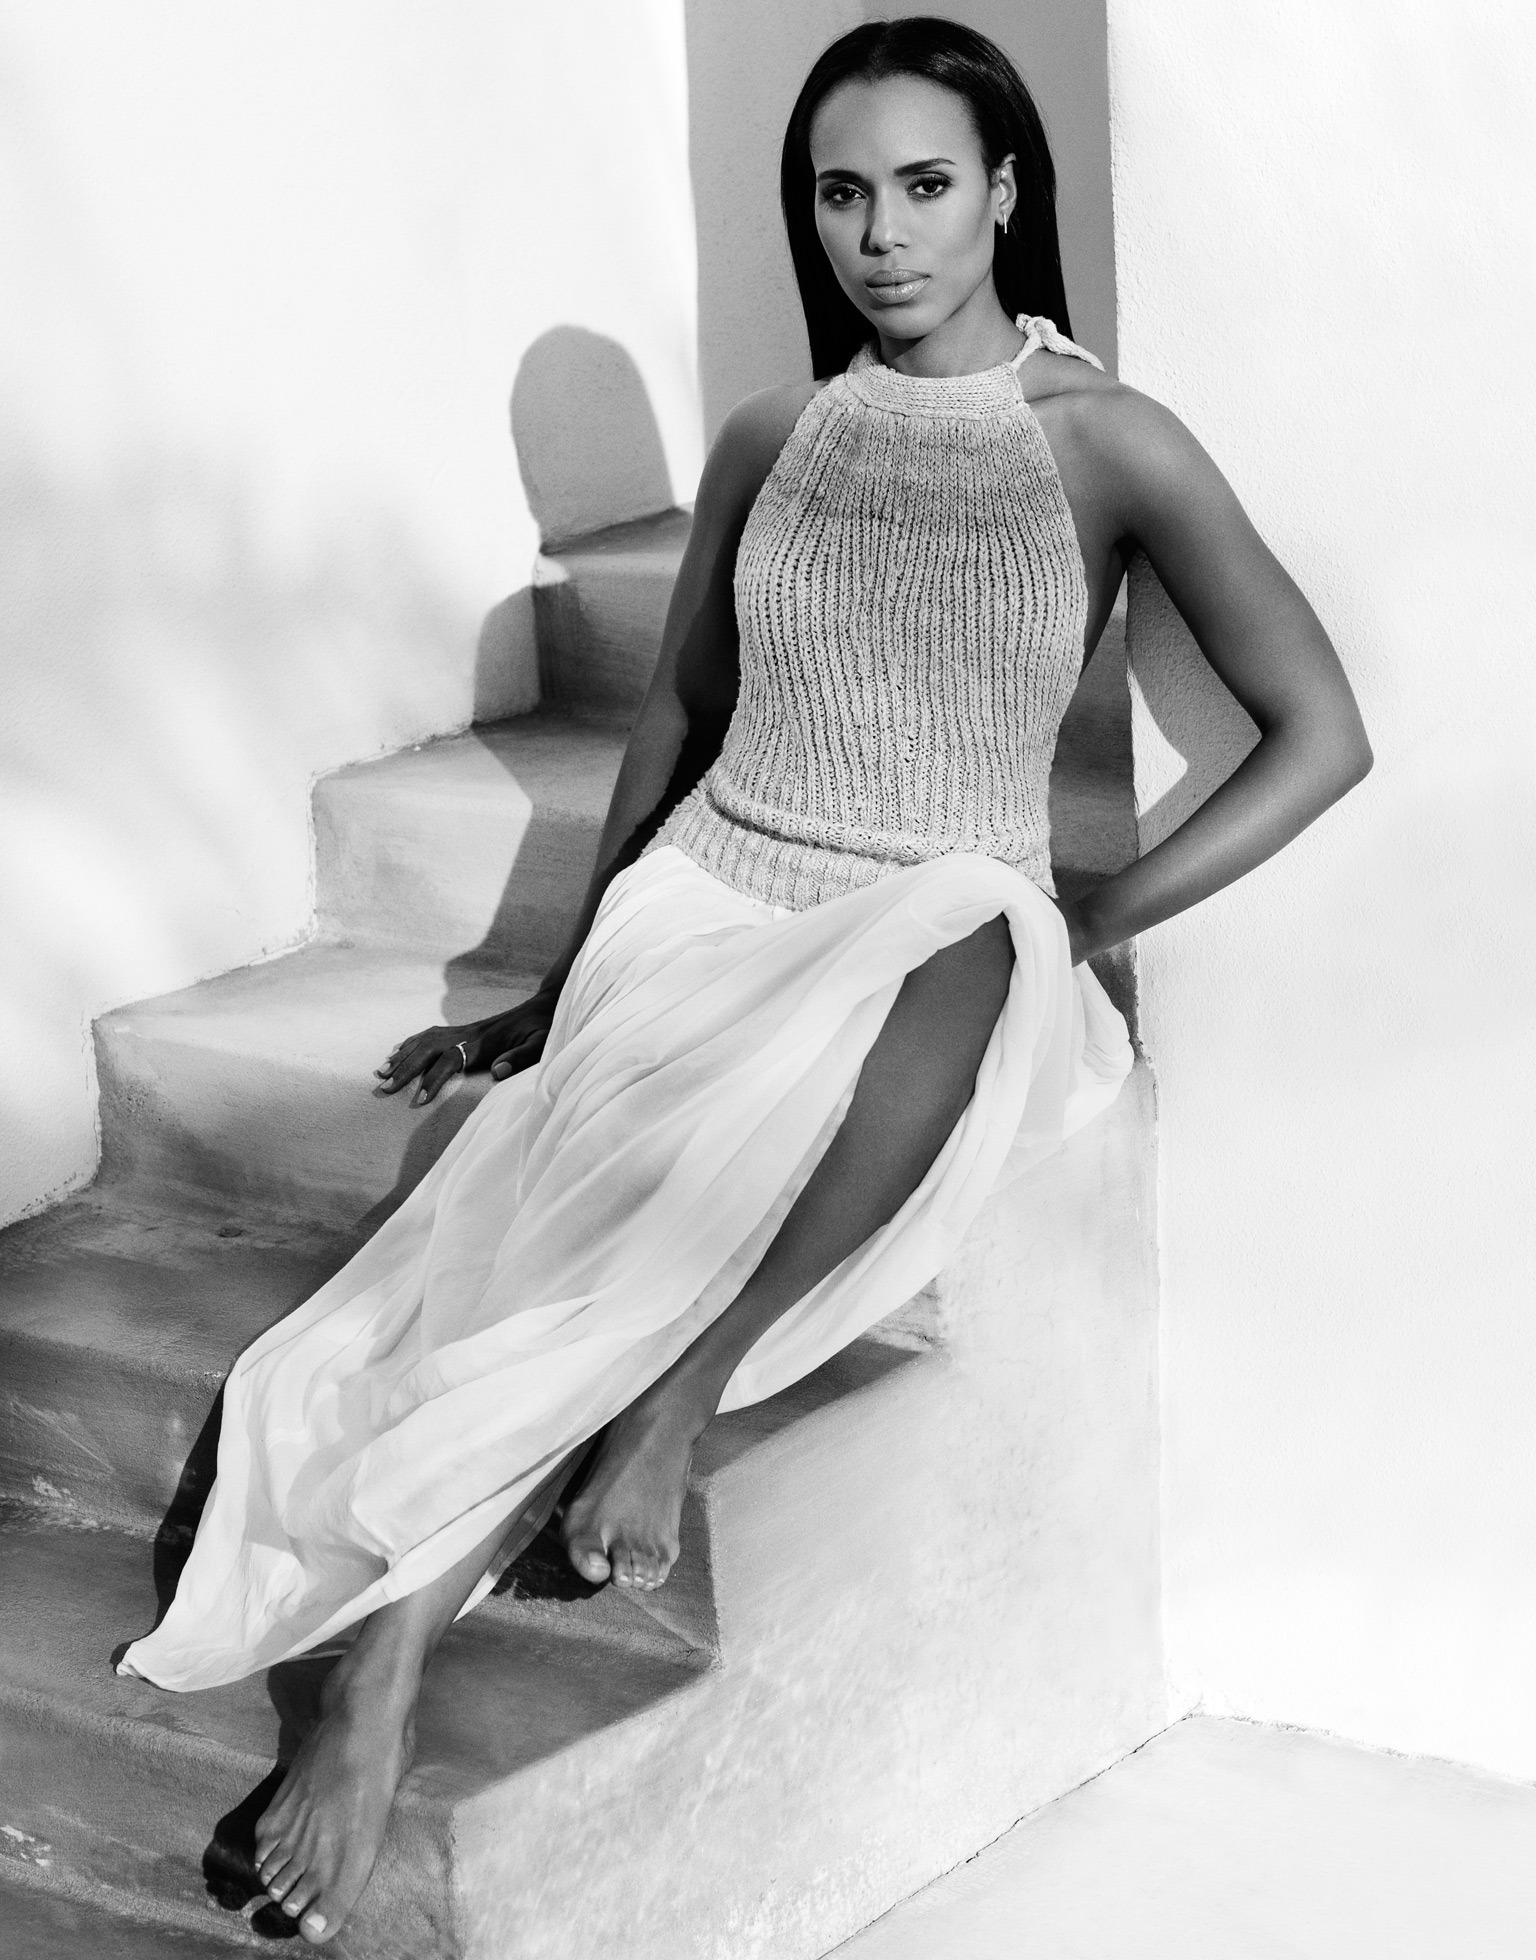 kerry-washington-feet-1752578.jpg